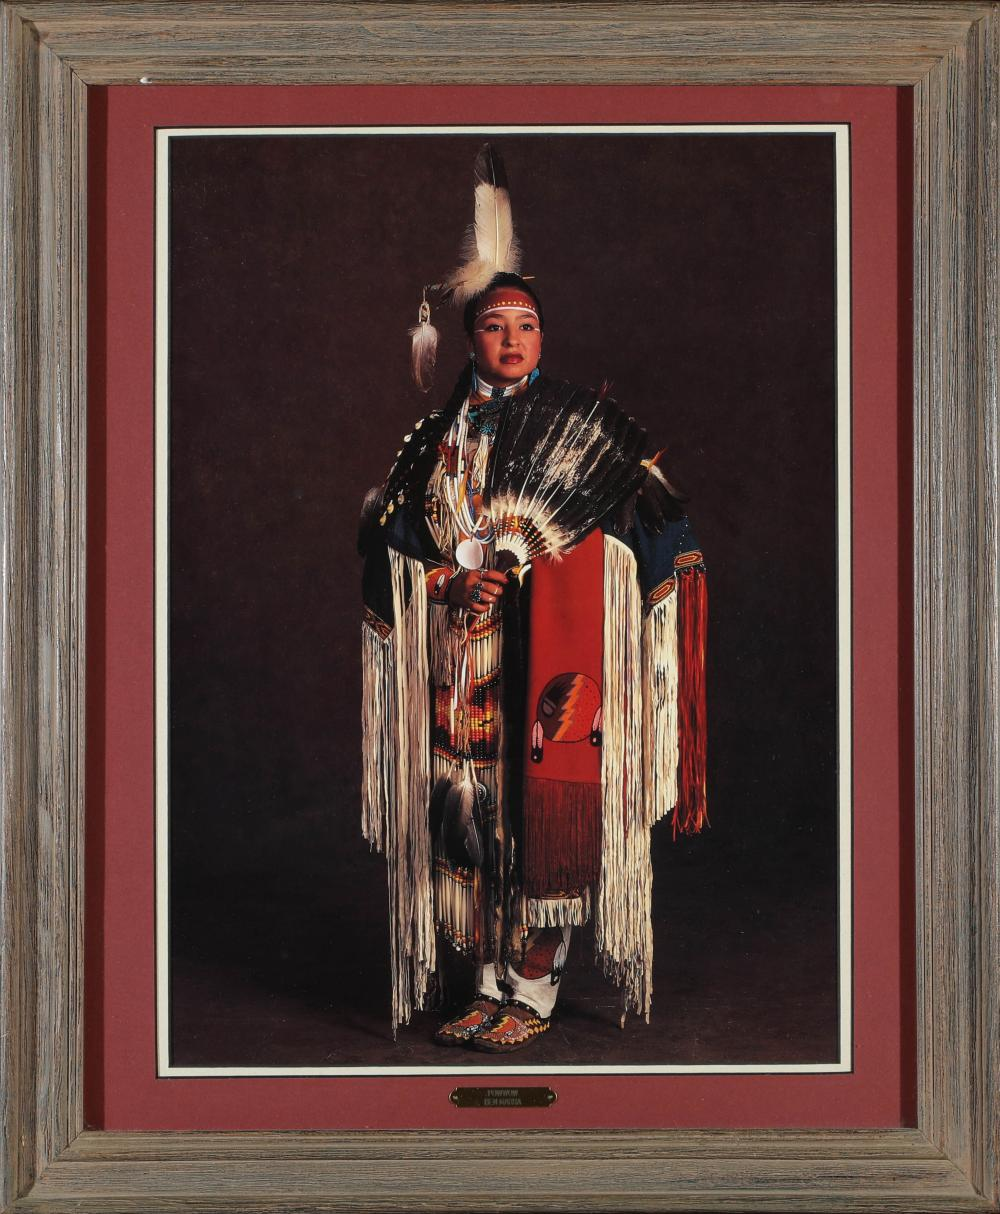 Lot 1150: Native American Woman in Pow Wow Attire (87649)